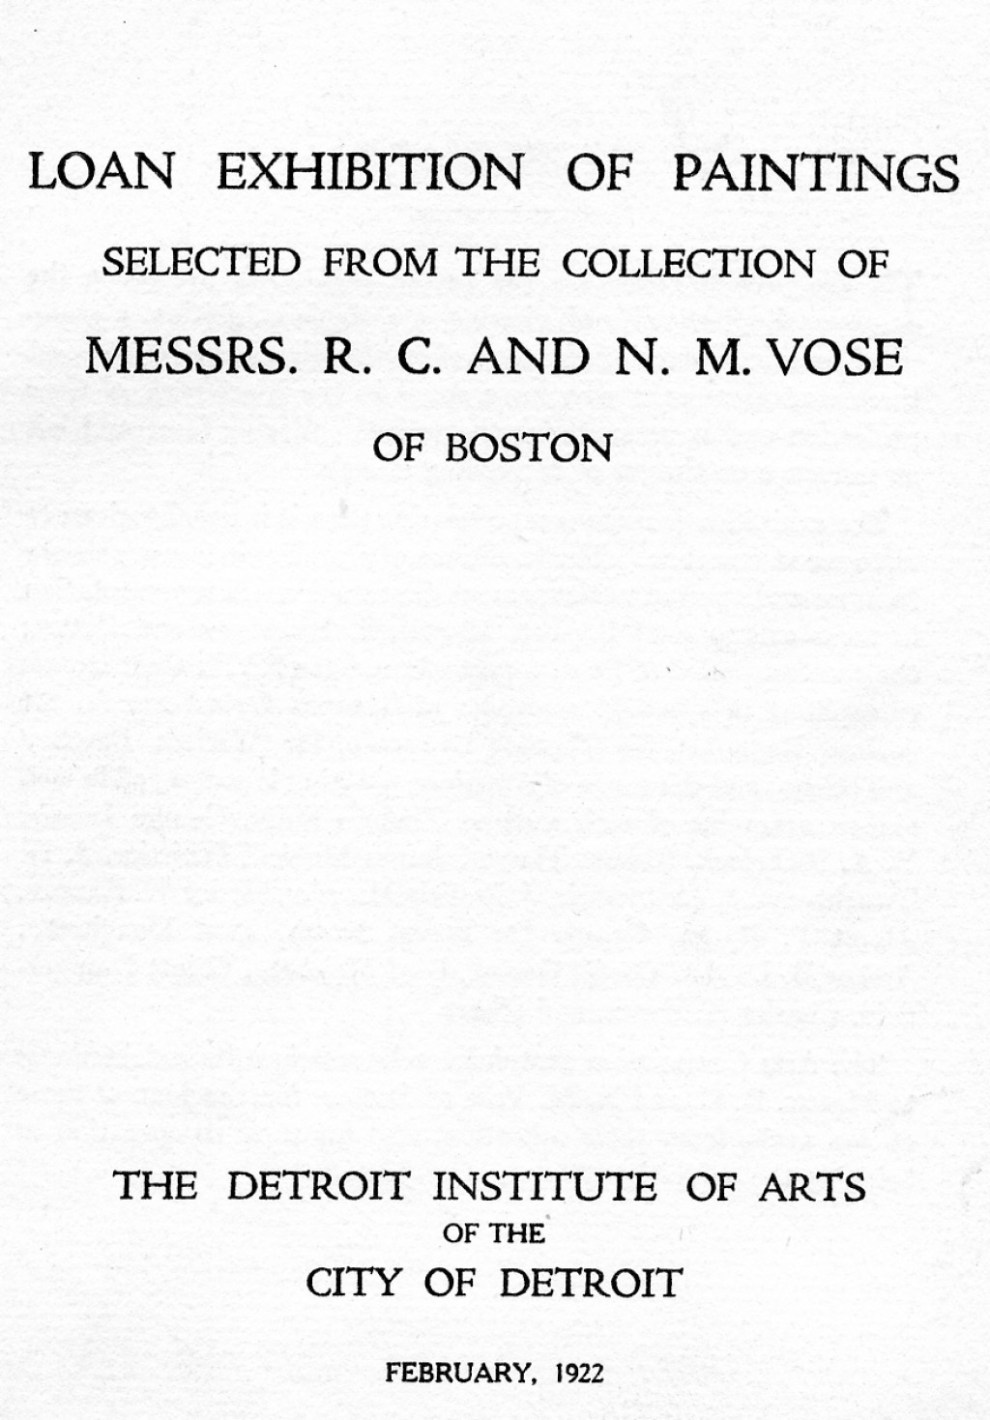 "1922 The Detroit Institute of Arts of the City of Detroit, Detroit, MI, ""Loan Exhibition of Paintings Selected from the Collection of Messrs. R. C. and N. M. Vose of Boston"", February"